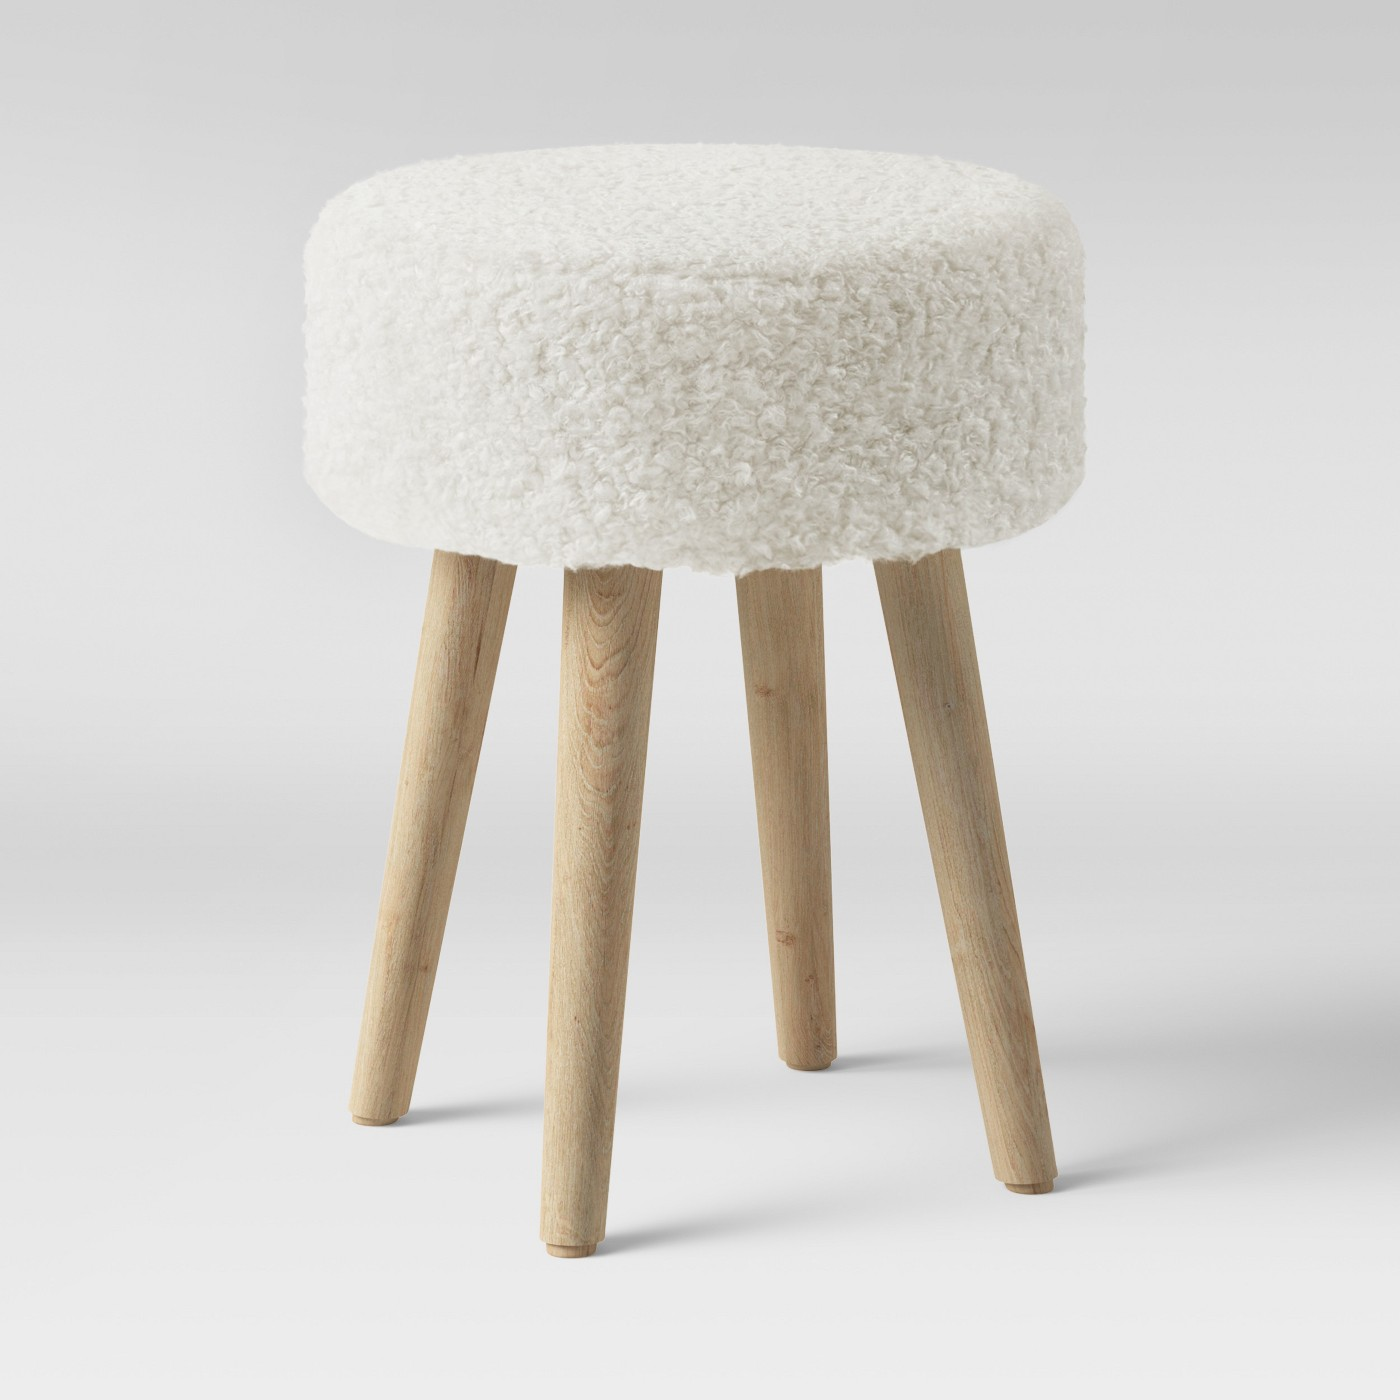 Sherpa ottoman with wooden legs